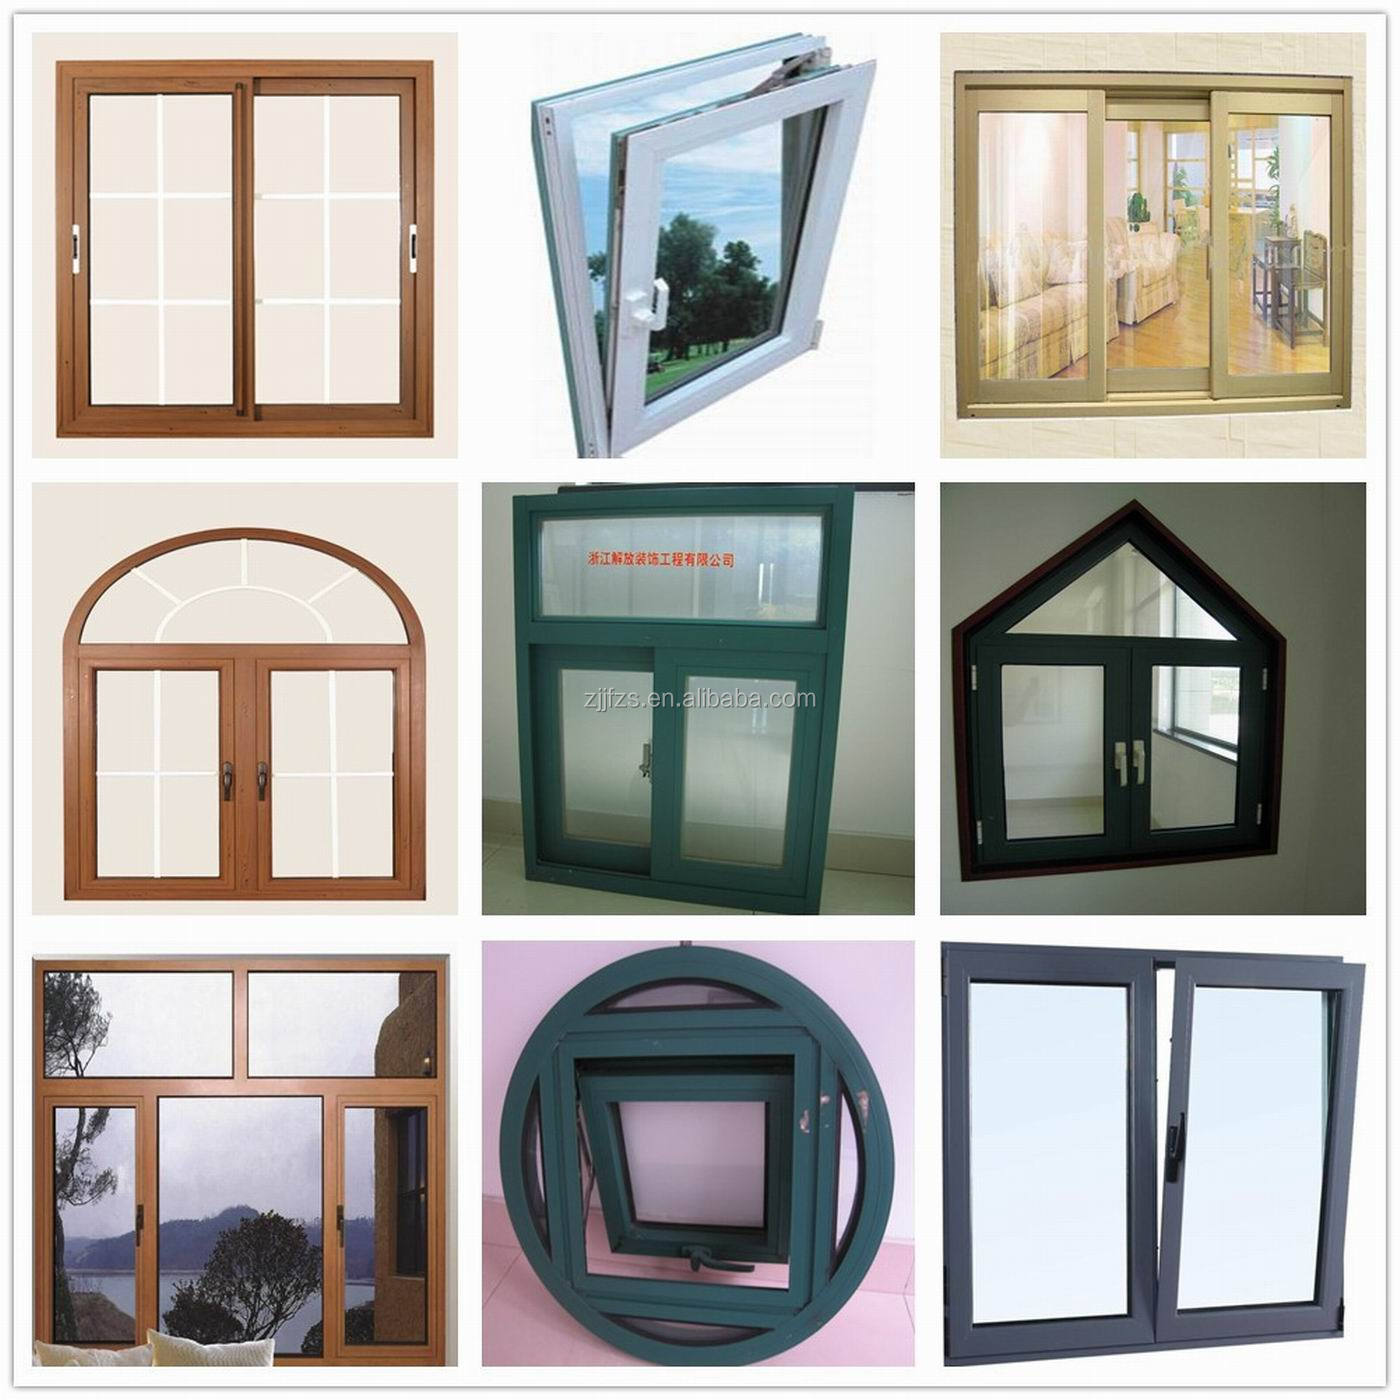 Sliding windows for homes - White Aluminum Sliding Windows With Screen Made In China Design Windows For Homes